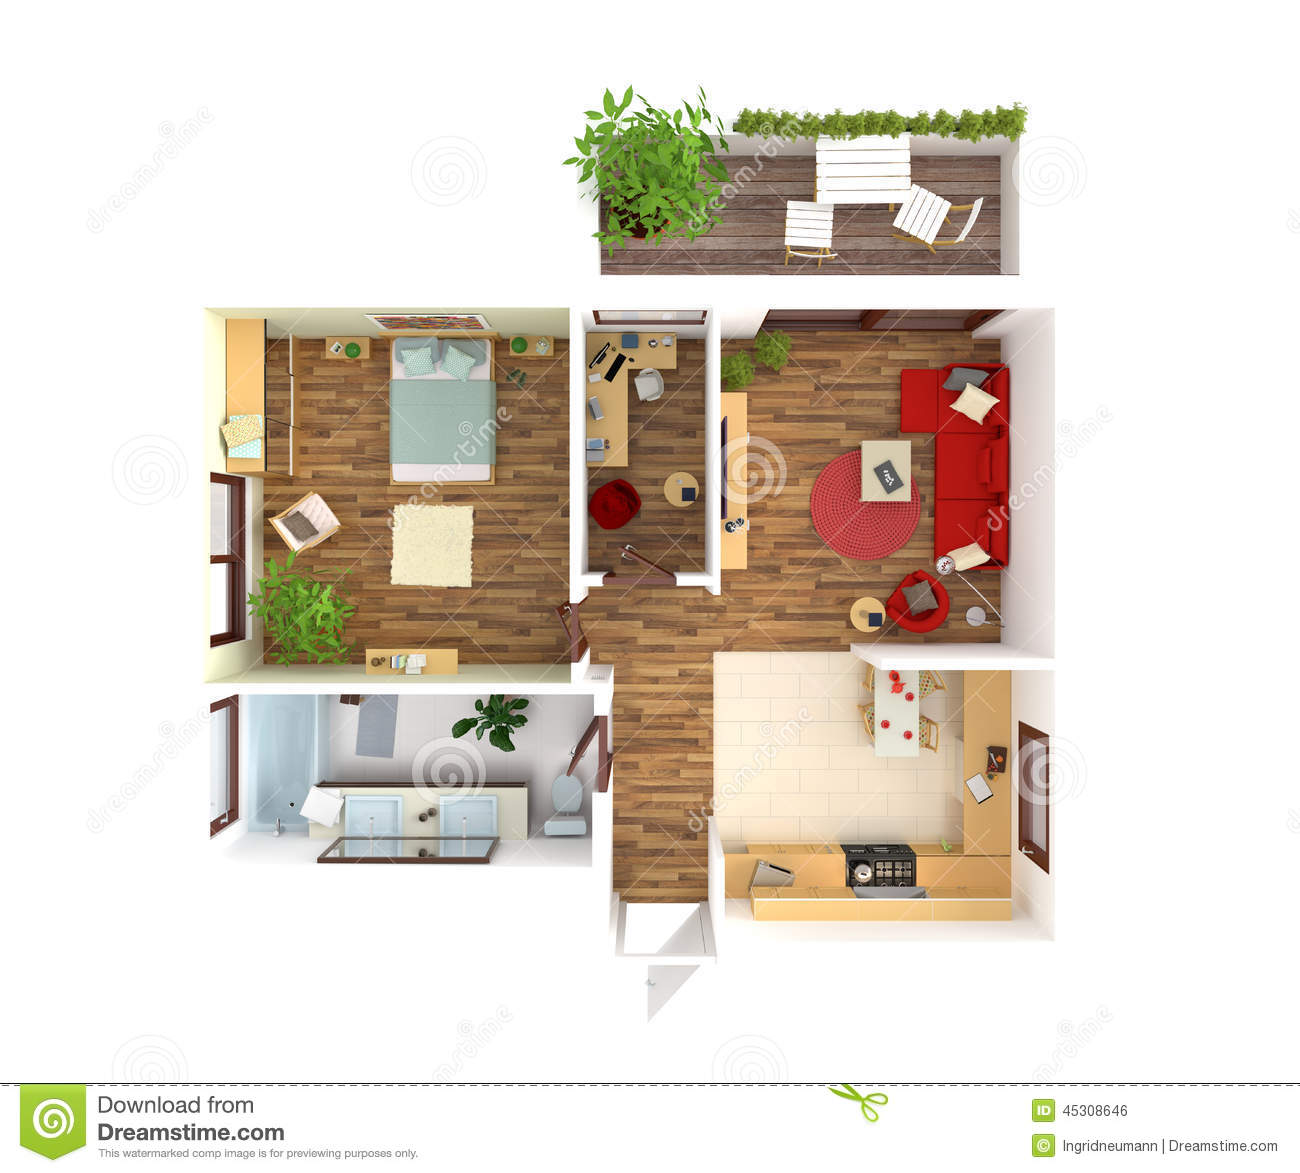 House plan top view interior design stock illustration for House plans with inside photos